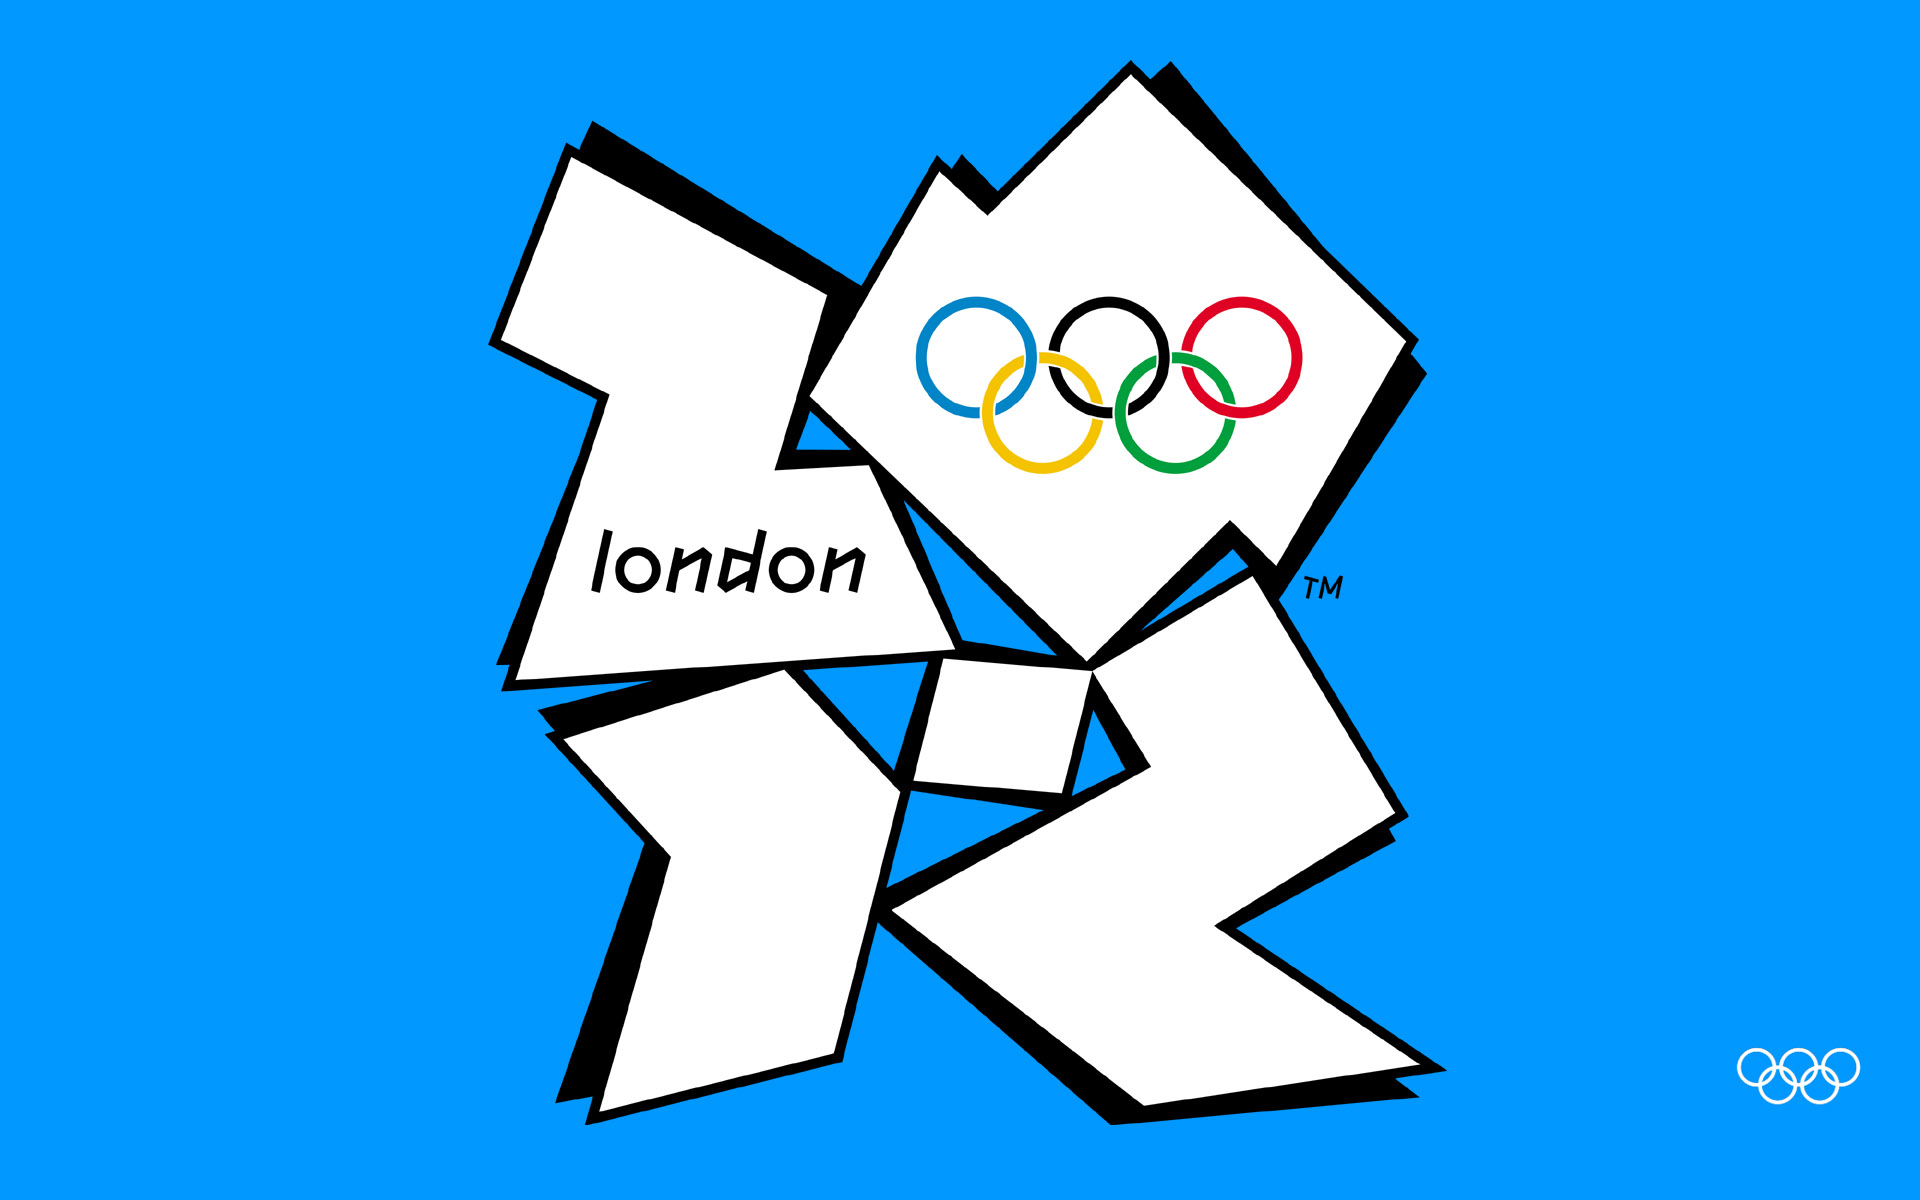 London 2012 olympic logo was it really so bad after all adweek wolff olins execs look back at the criticisms biocorpaavc